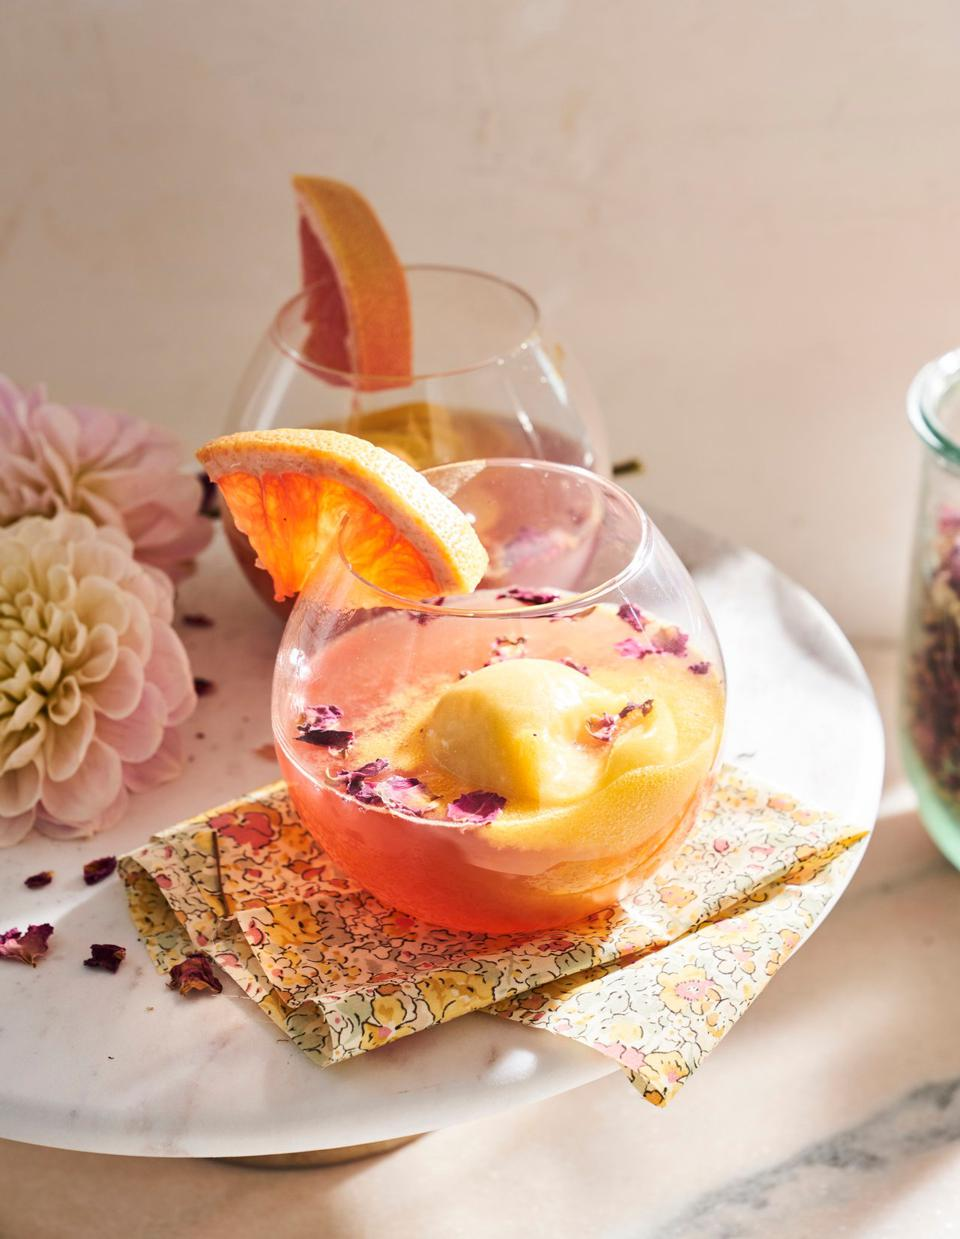 Cocktail in a large bowl-like glass with fruit garnishes.